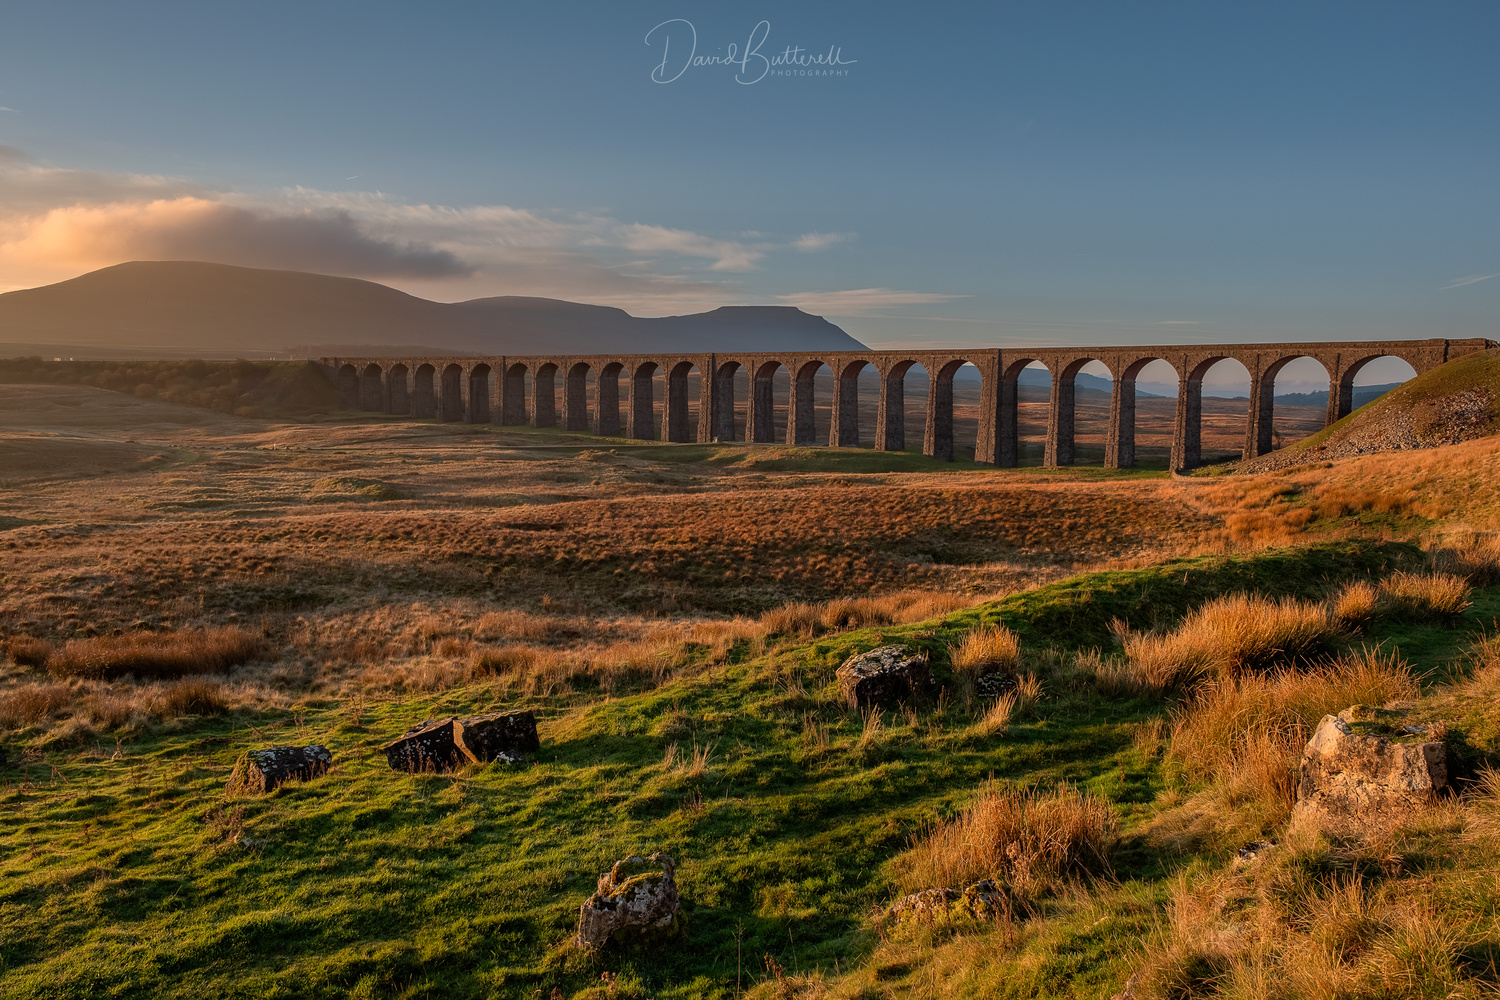 RibbleHead Viaduct by David Butterell